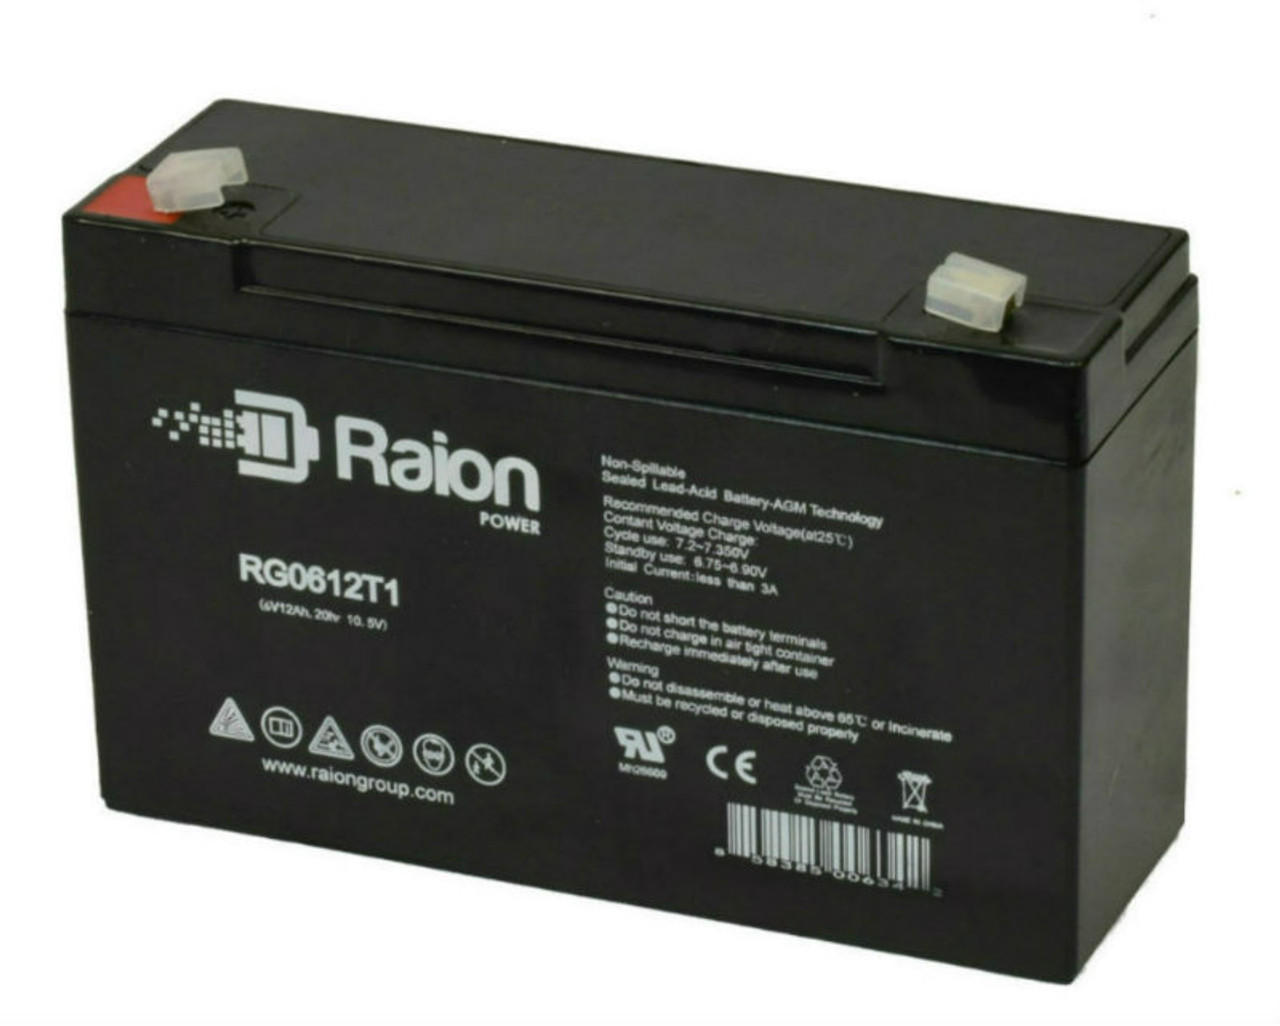 Raion Power RG06120T1 Replacement Battery Pack for Chloride TFM50TV2 emergency light